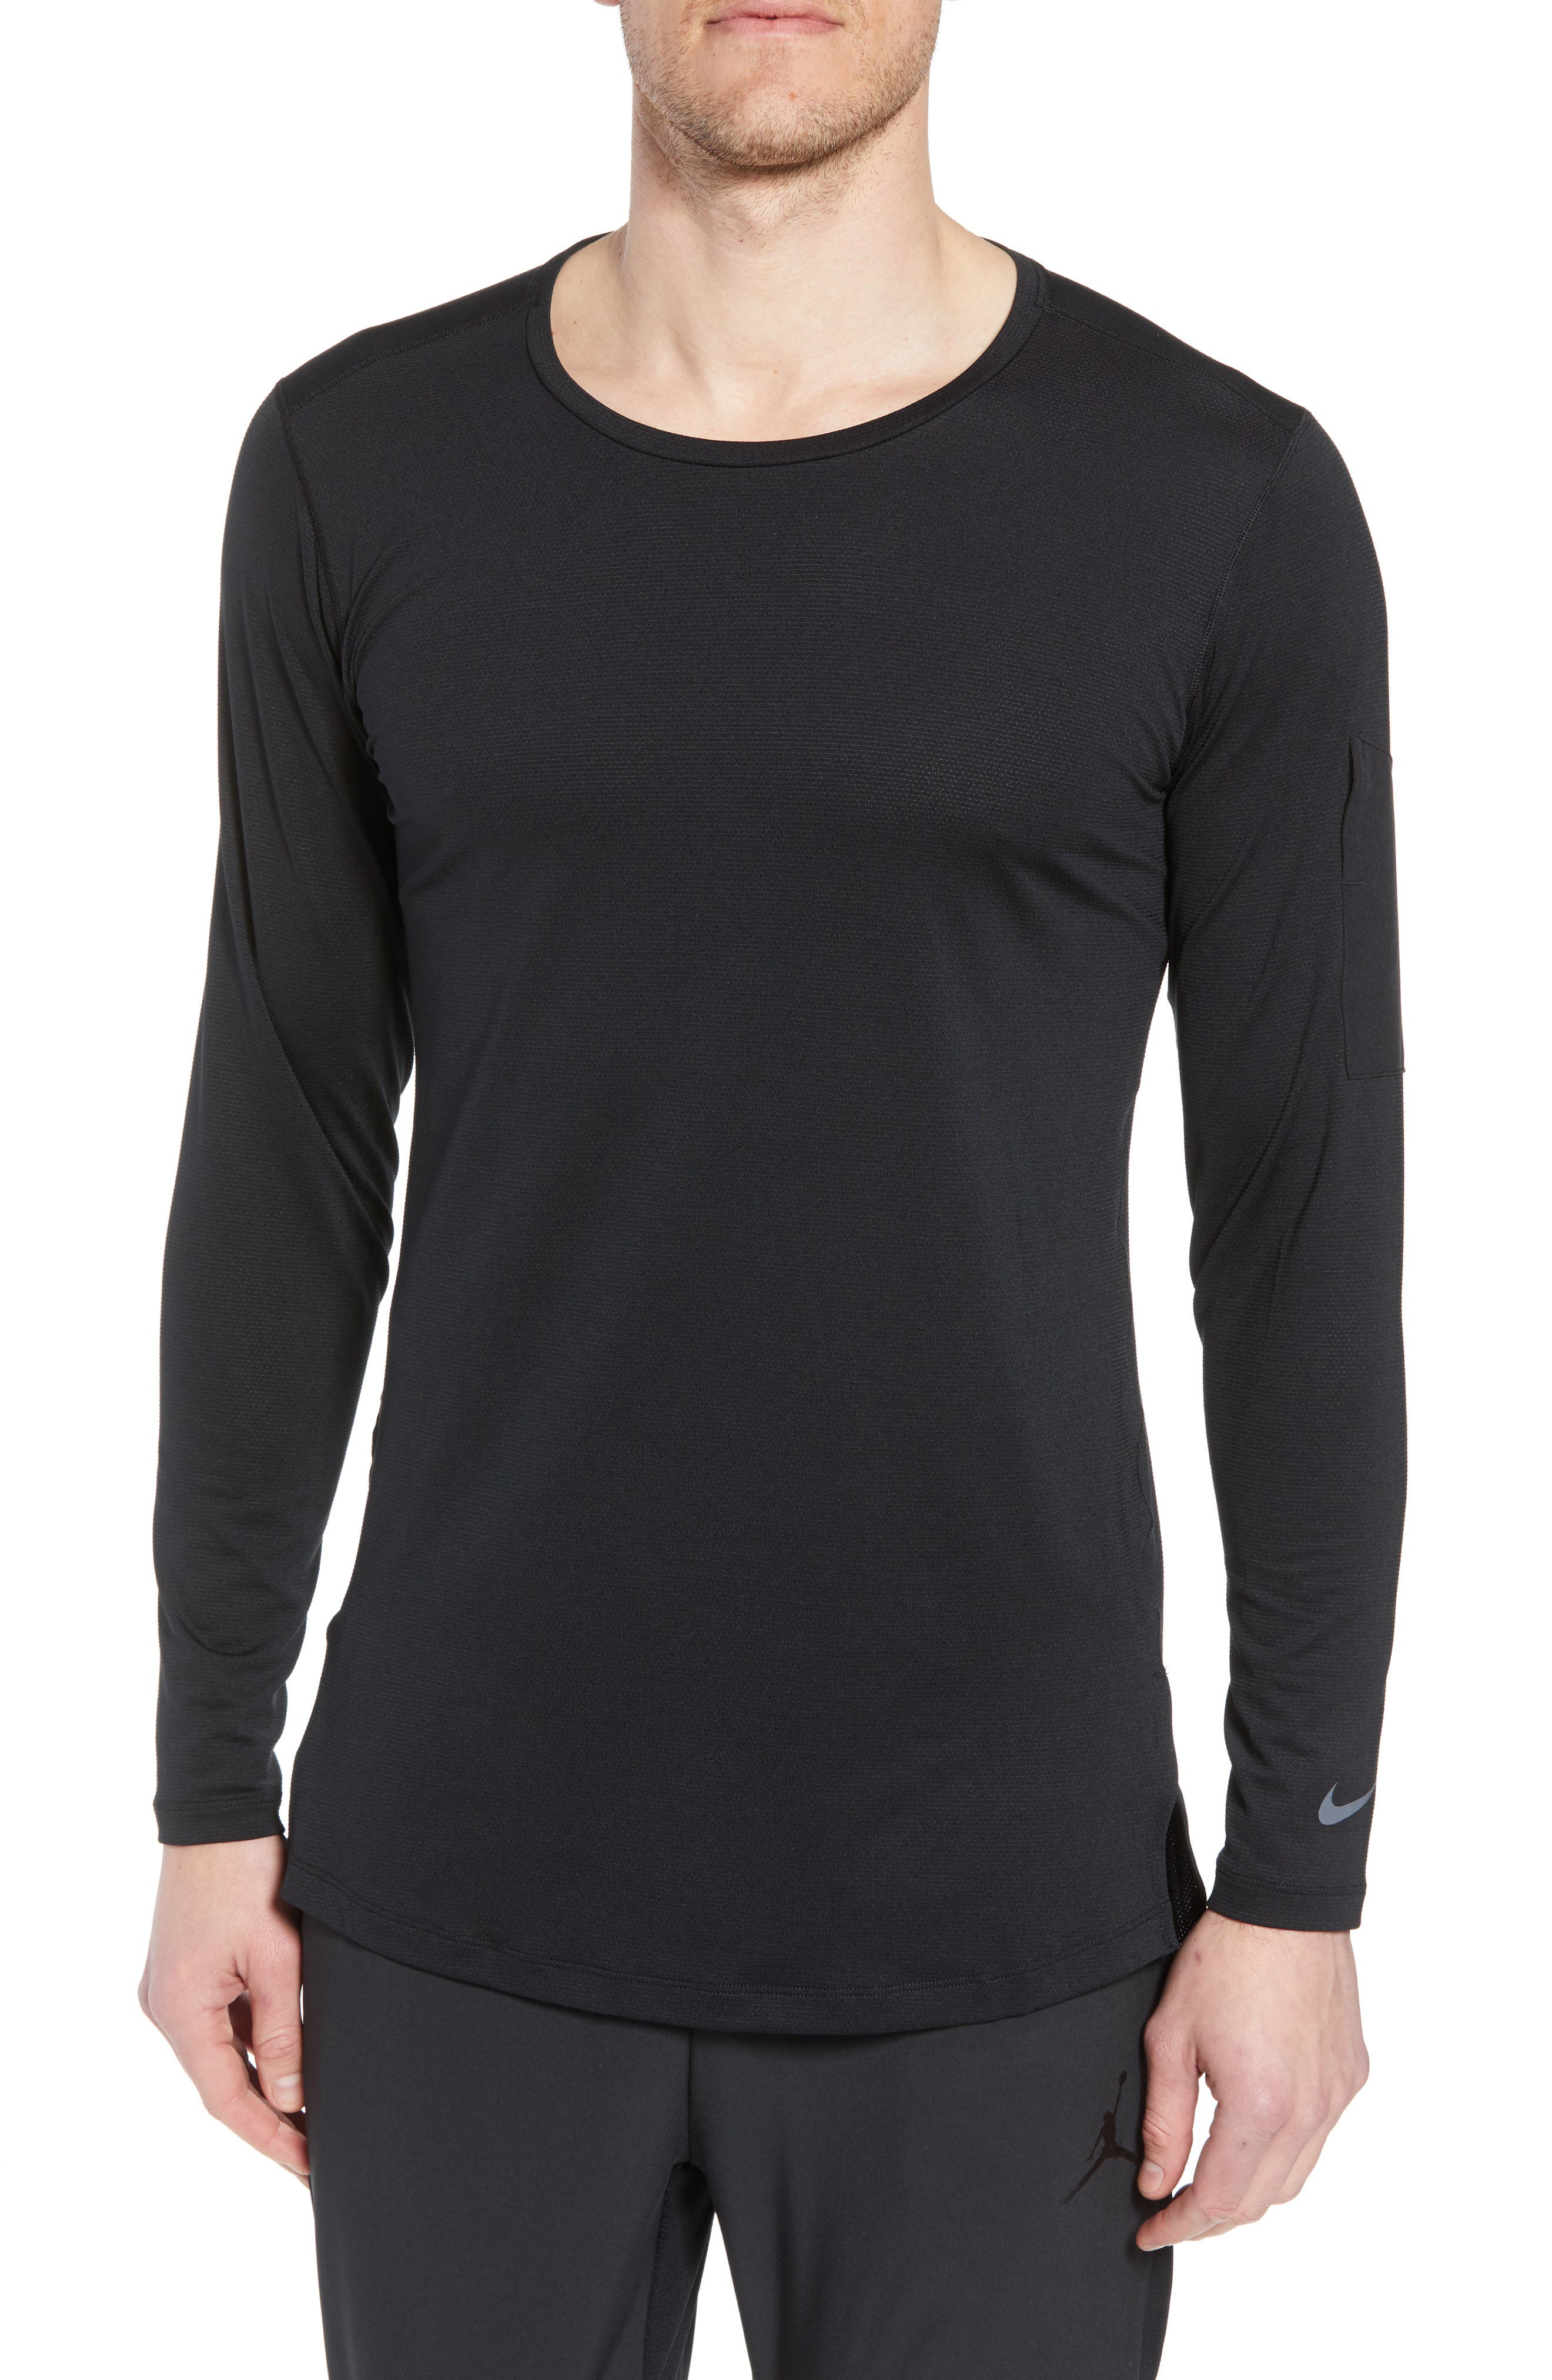 Pro Utility Fitted Training Top,                         Main,                         color, BLACK/ BLACK